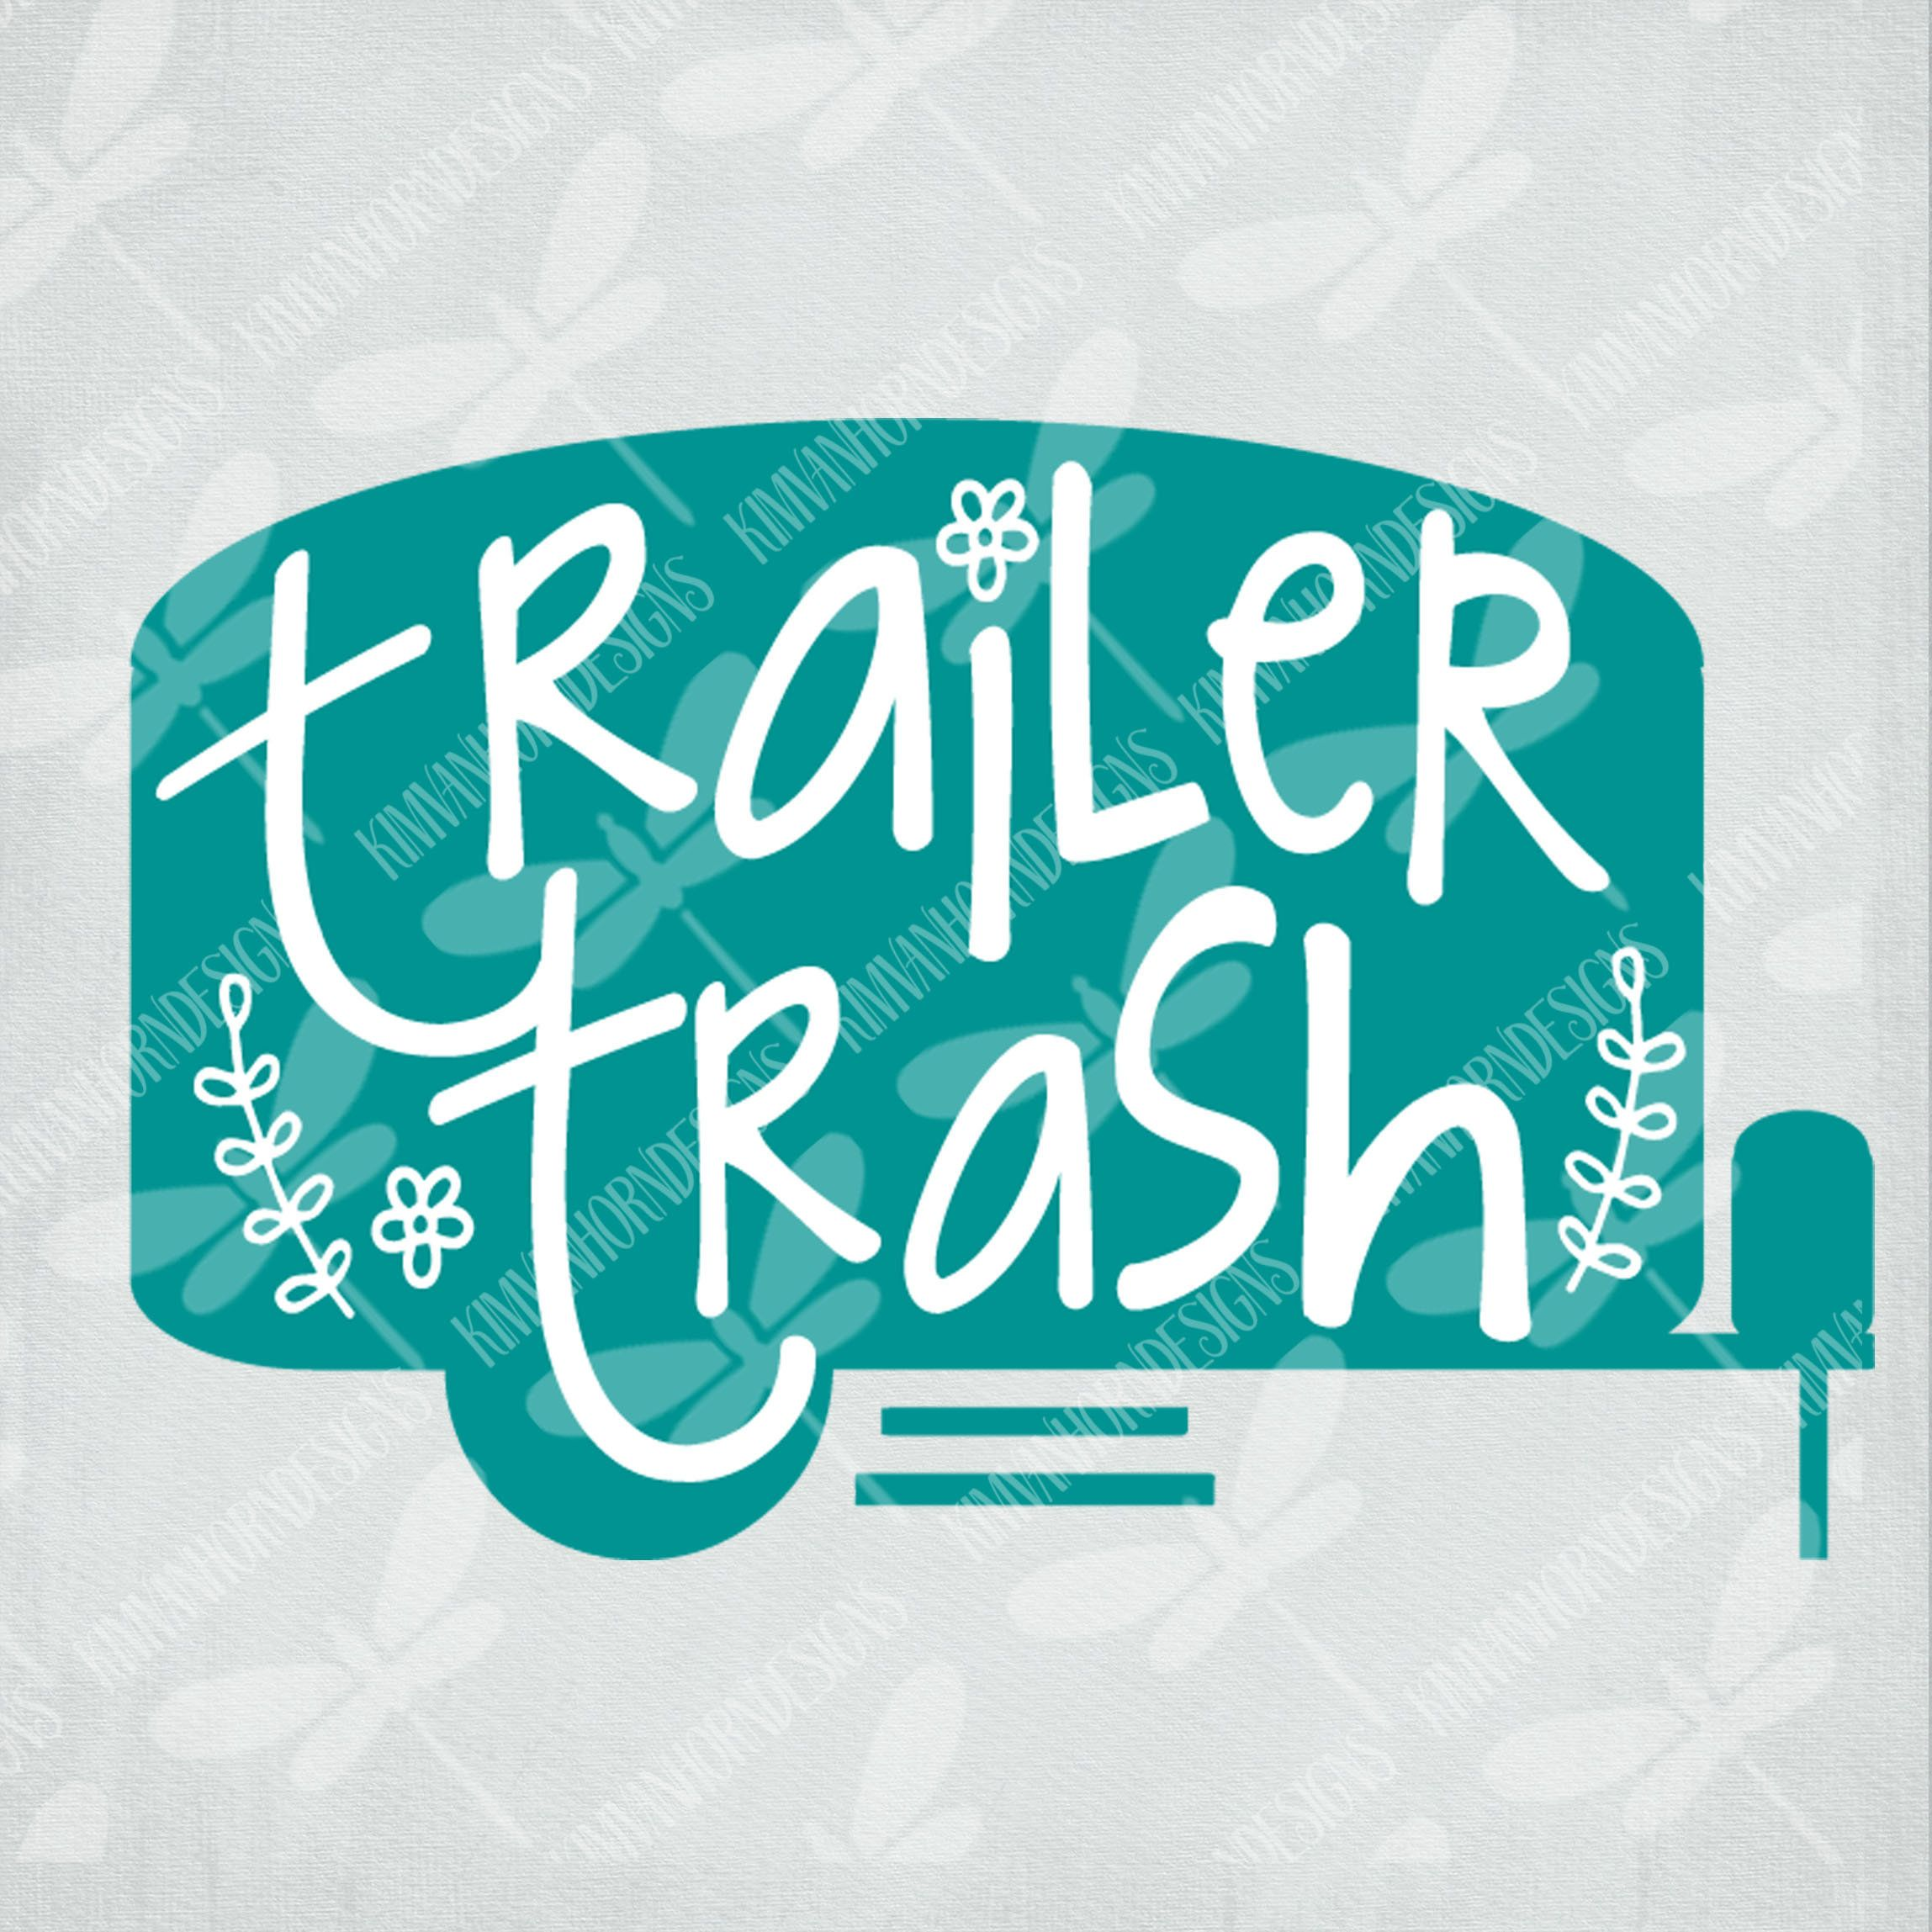 Camping SVG / Trailer Trash / Camper / Cut Files For Cricut